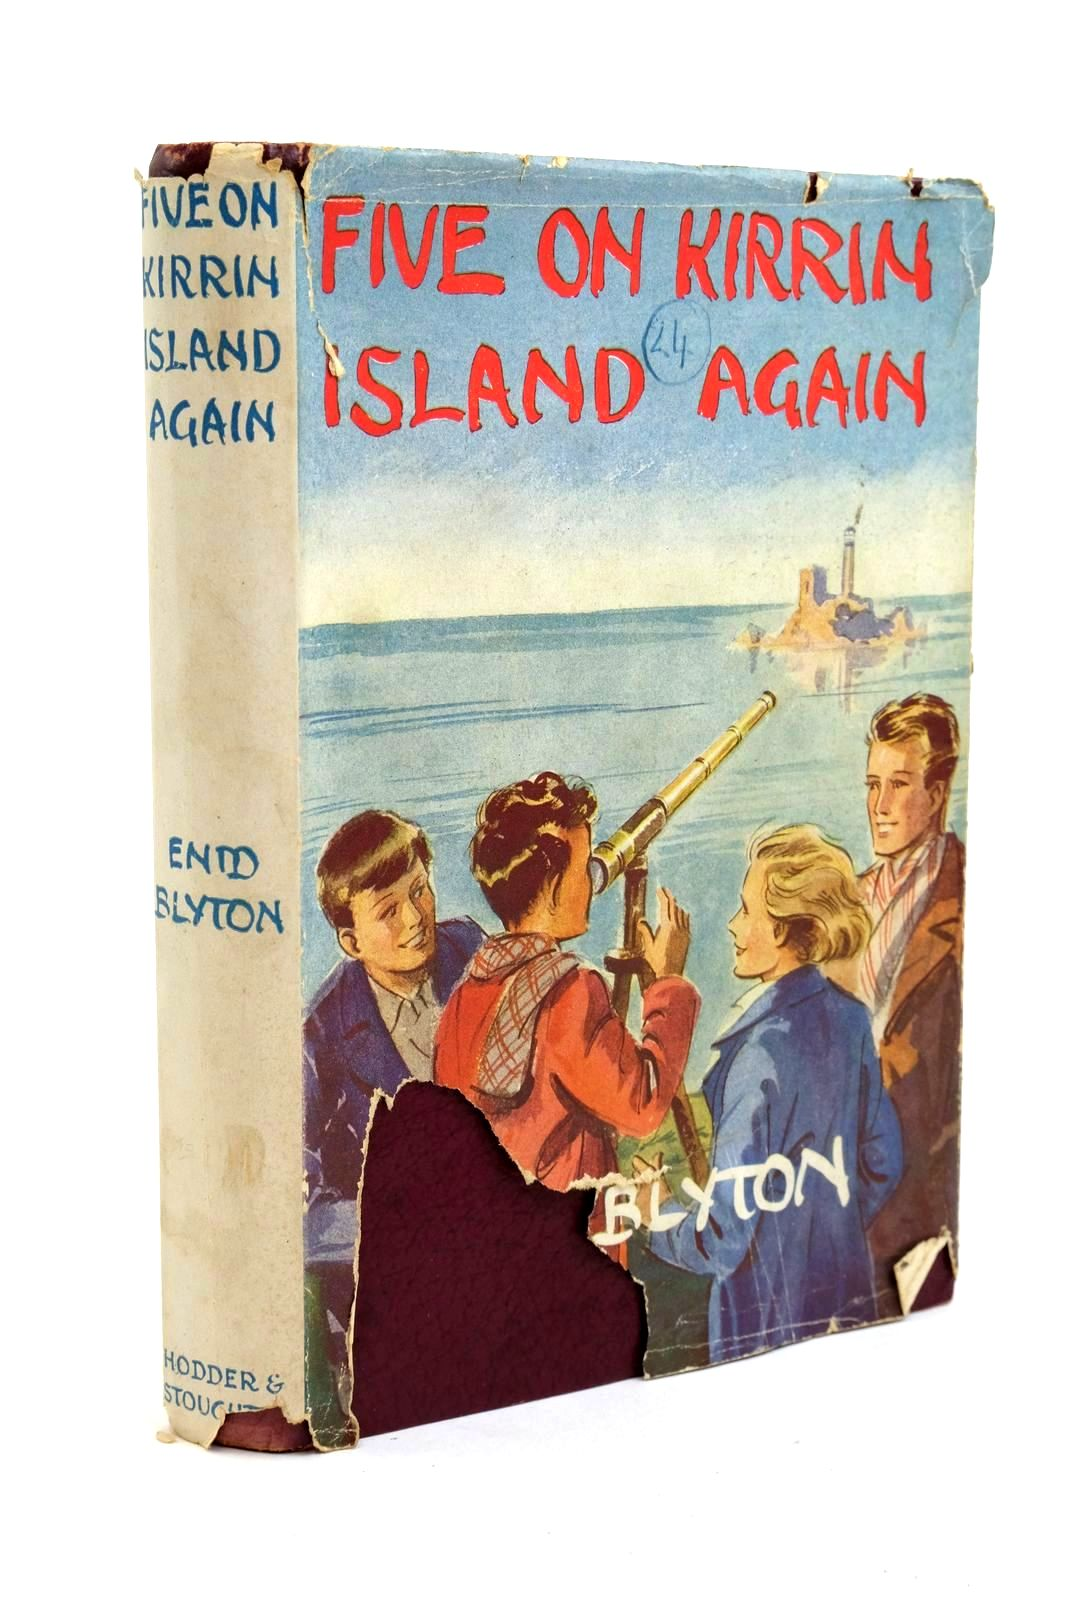 Photo of FIVE ON KIRRIN ISLAND AGAIN written by Blyton, Enid published by Hodder & Stoughton (STOCK CODE: 1321810)  for sale by Stella & Rose's Books